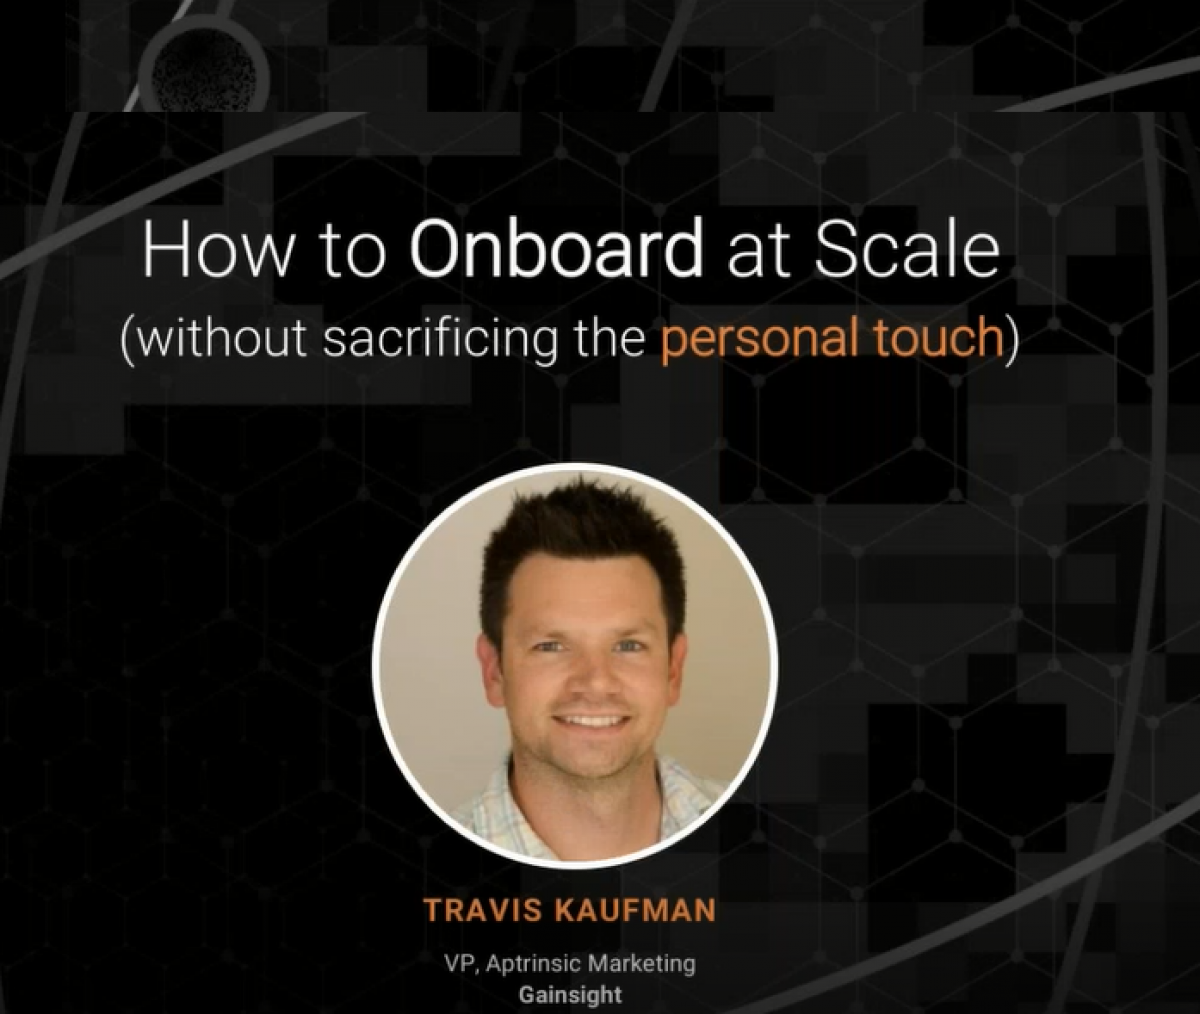 How to Onboard at Scale Without Sacrificing Personal Touch